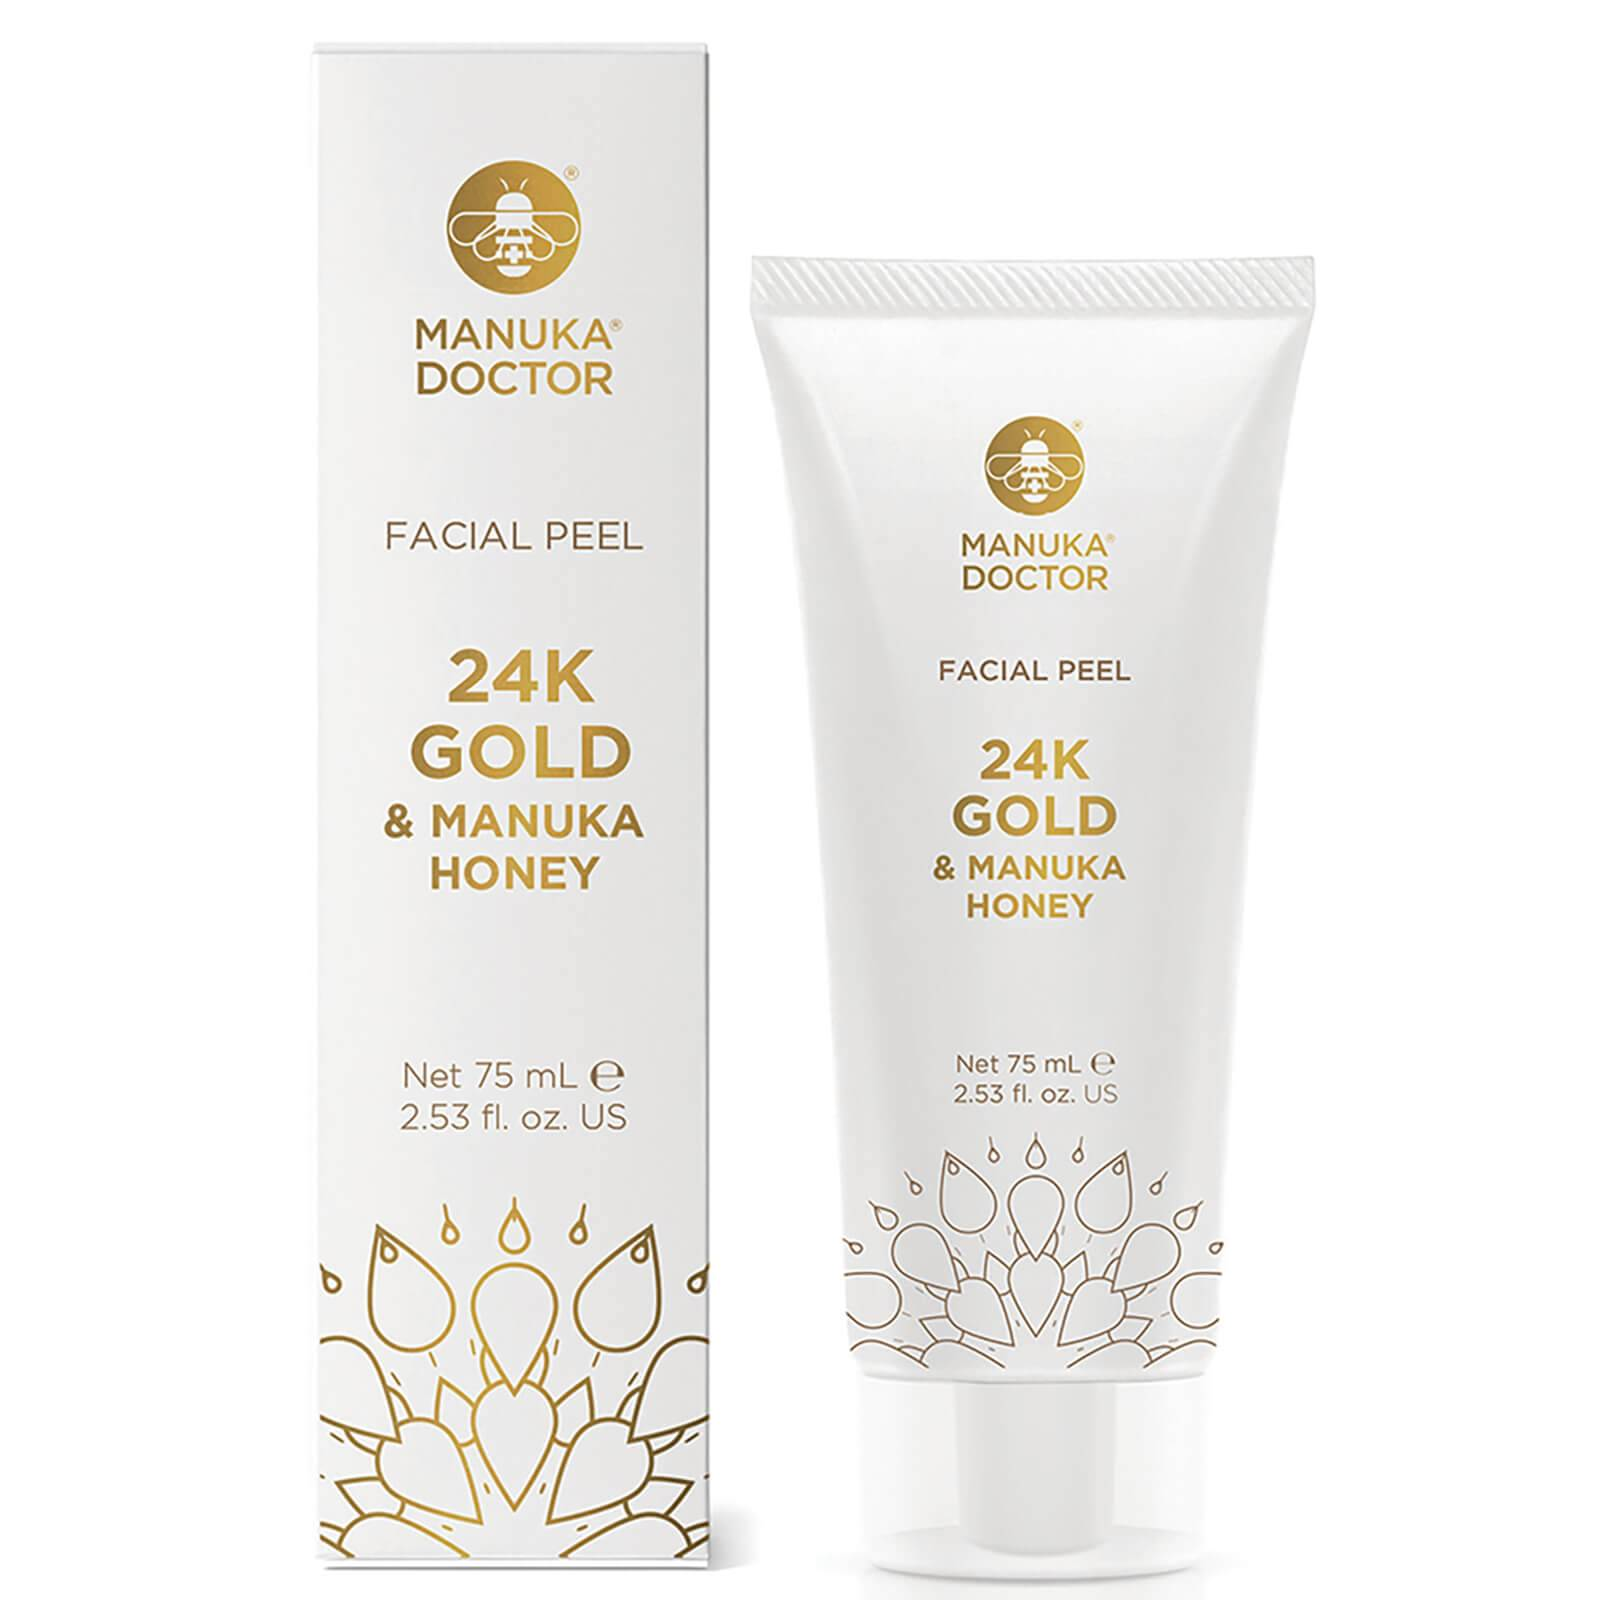 Manuka Doctor 24K Gold Facial Peel